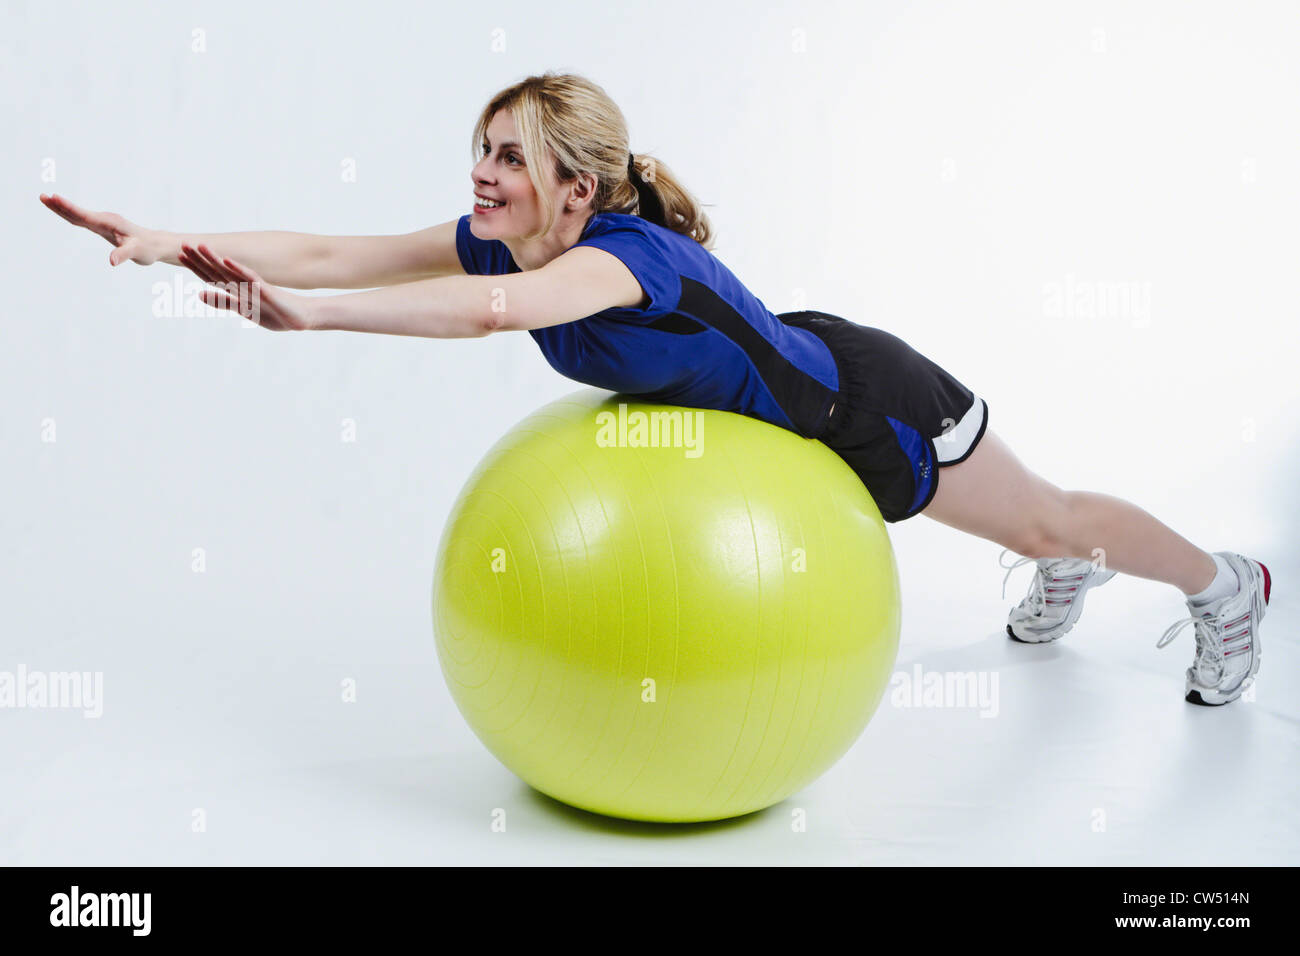 Woman Lying on Belly on Exercise Ball and Stretching - Stock Image